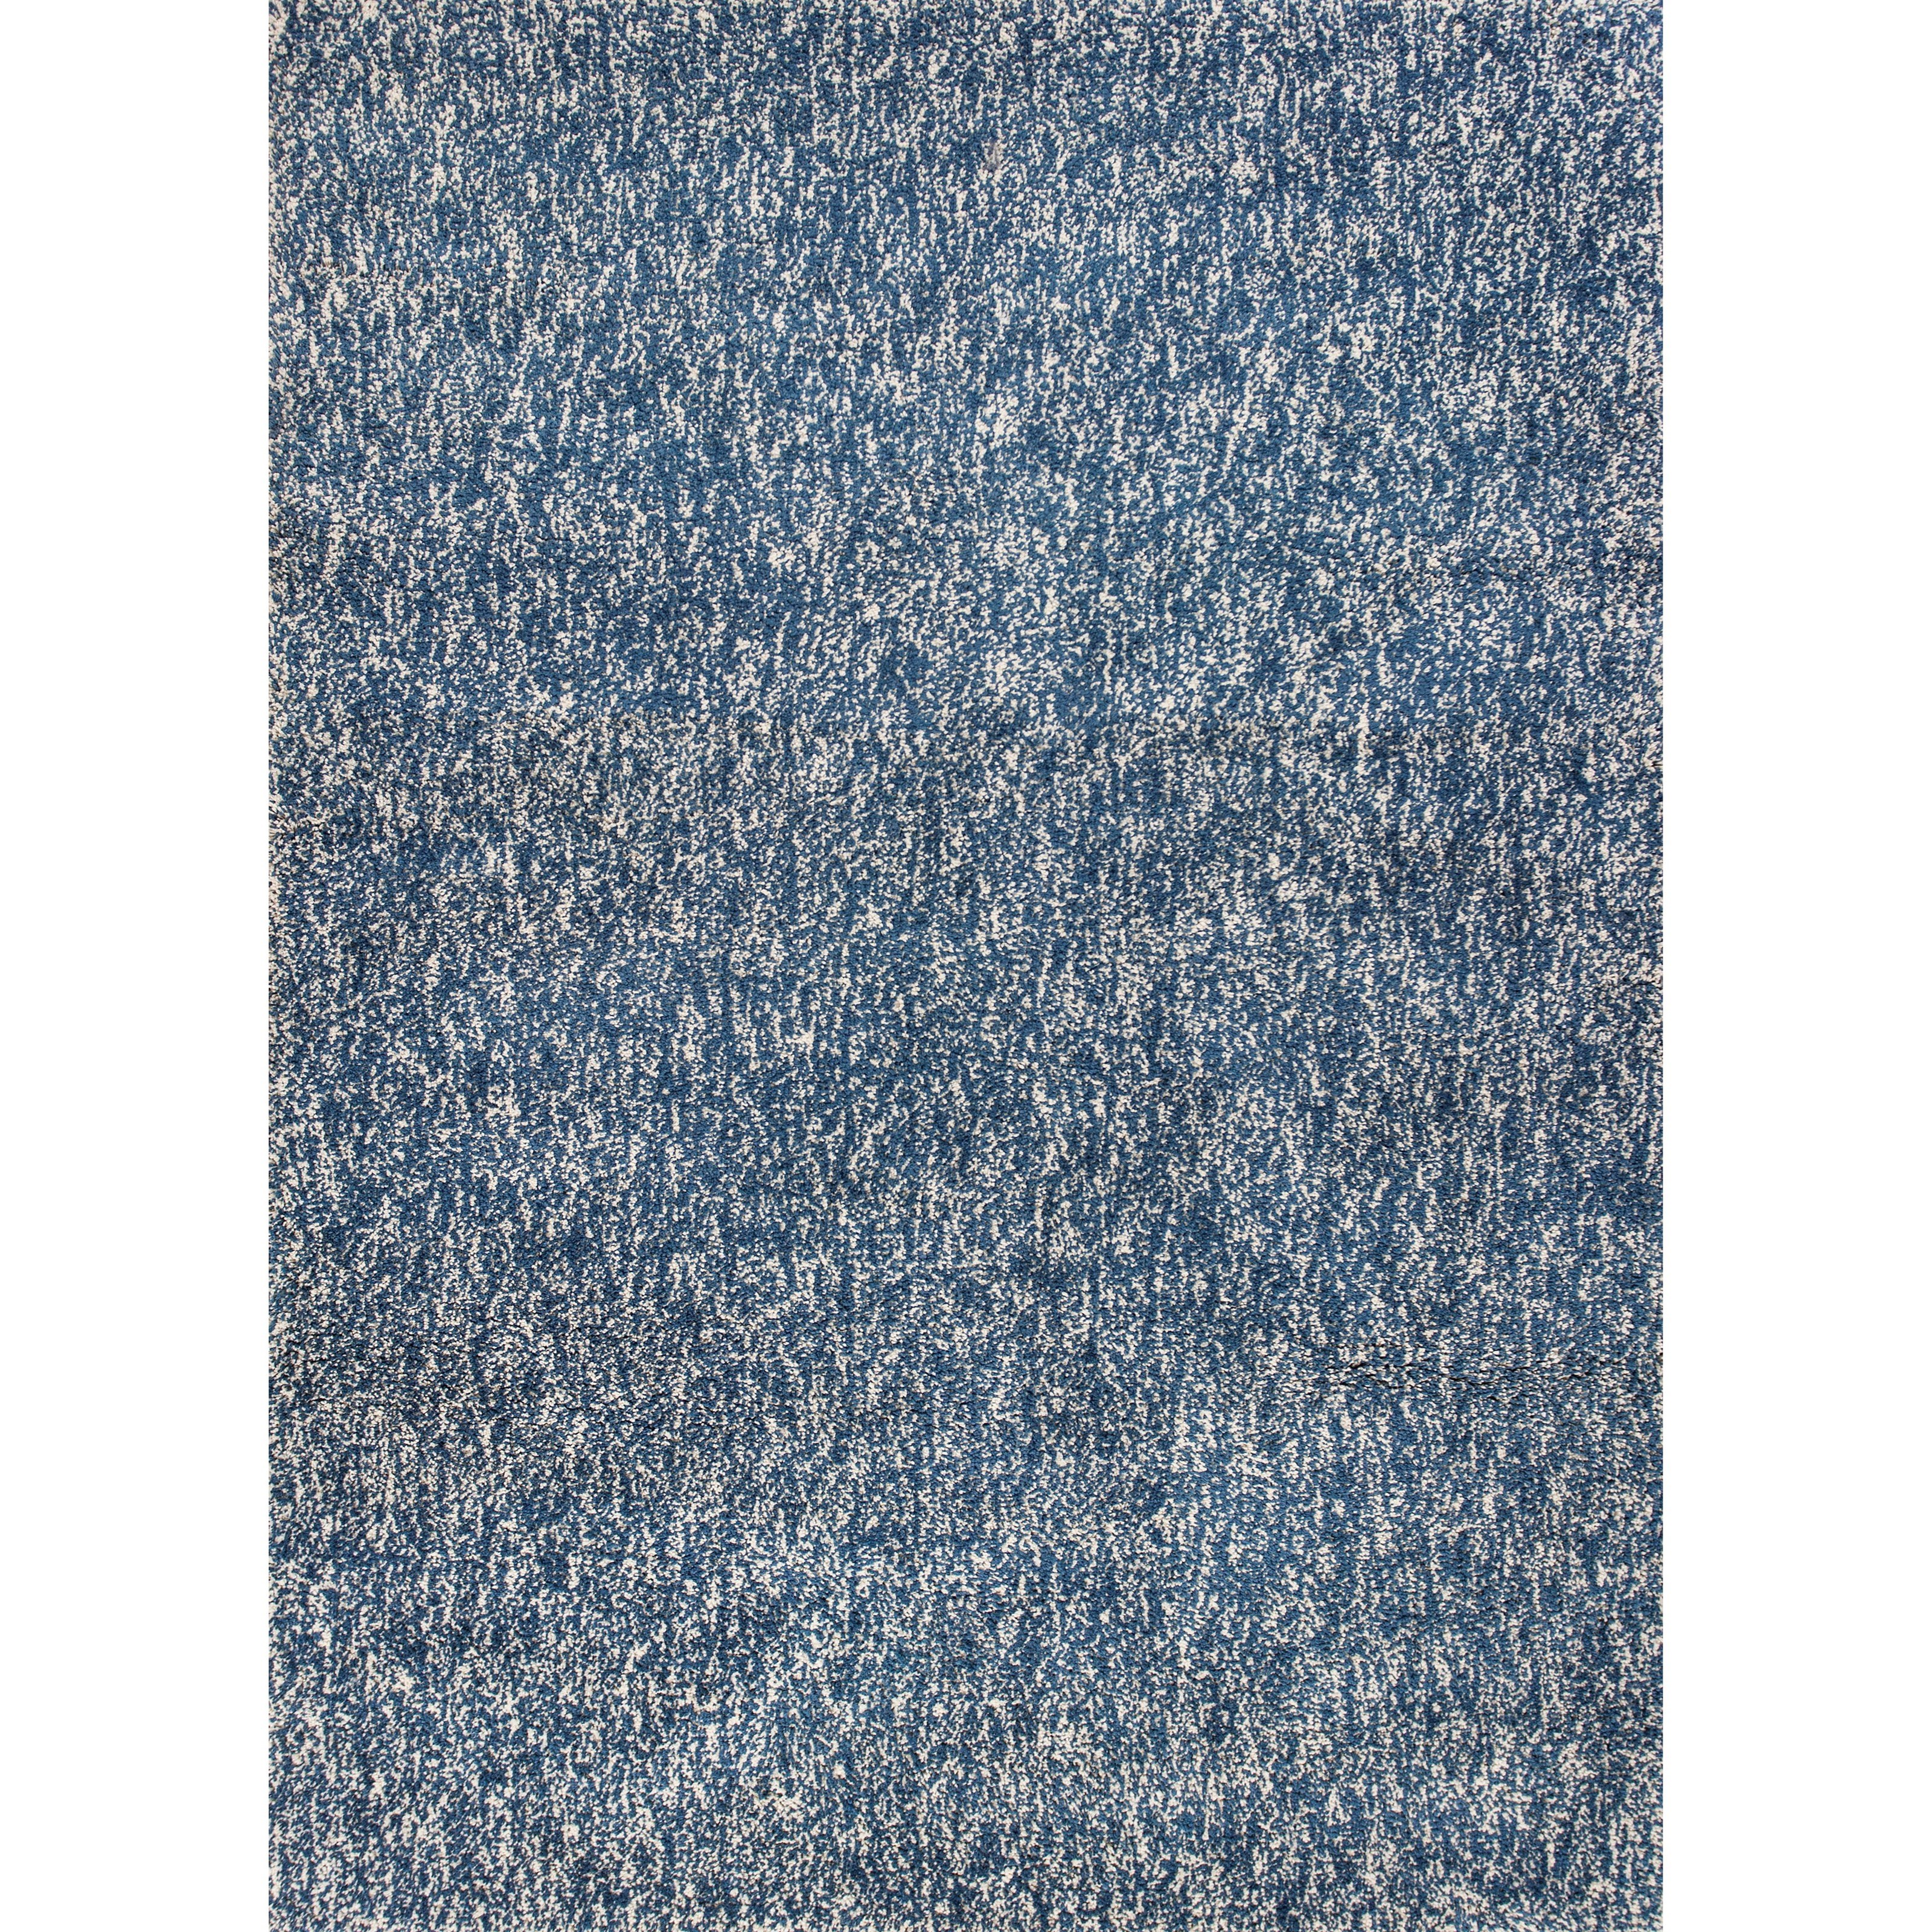 Bliss 11' X 8' Area Rug by Kas at Zak's Home